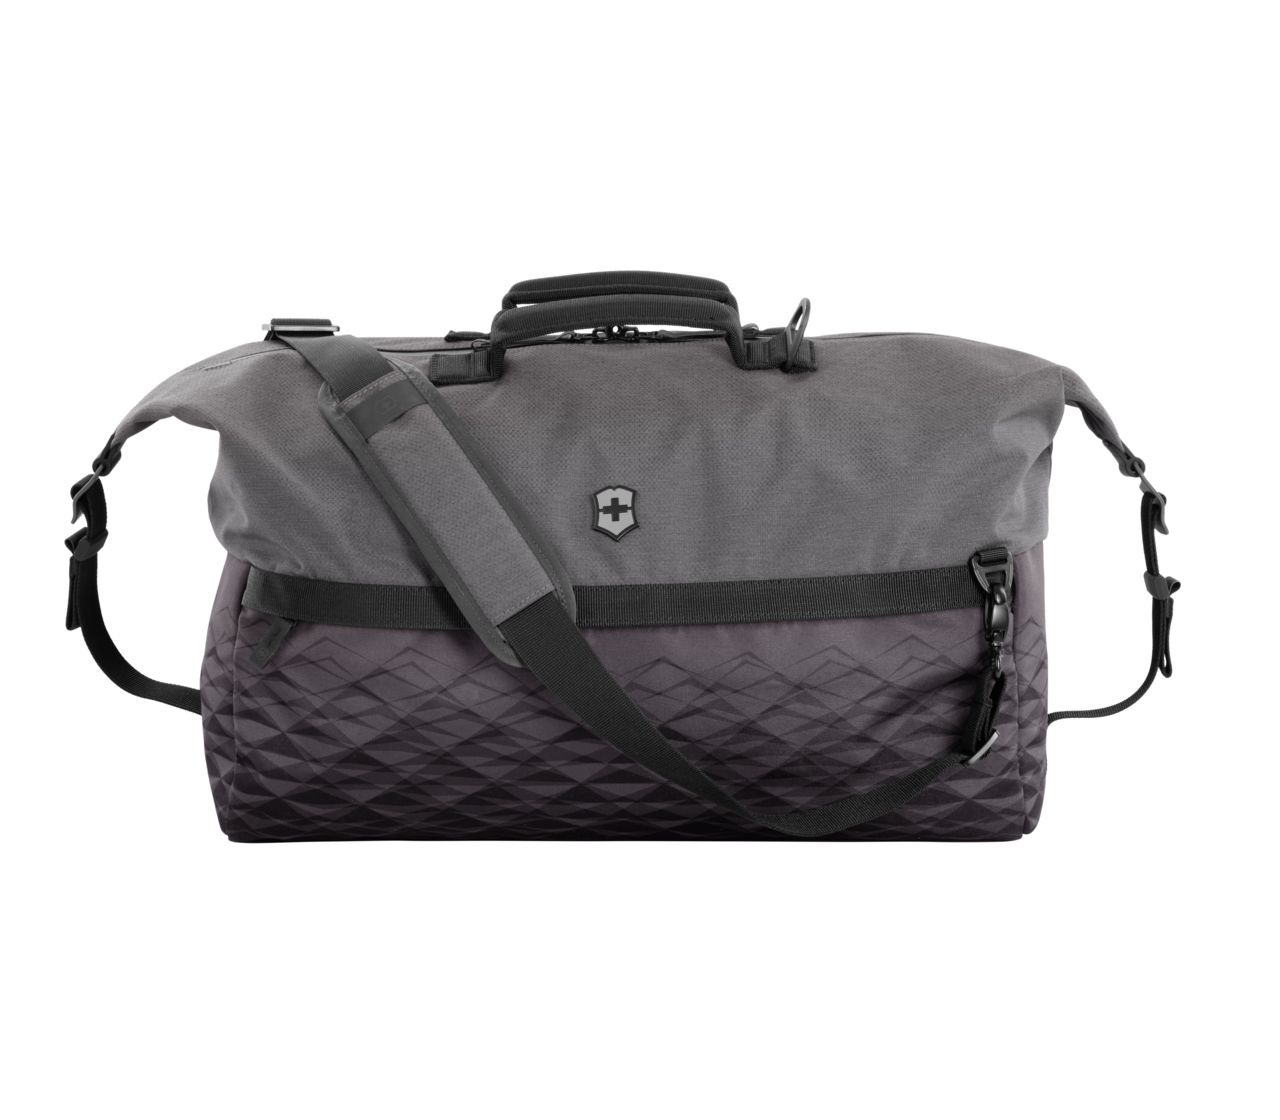 Victorinox Vx Touring Duffel in Anthracite - 601494 41bfd6ef6bcd5